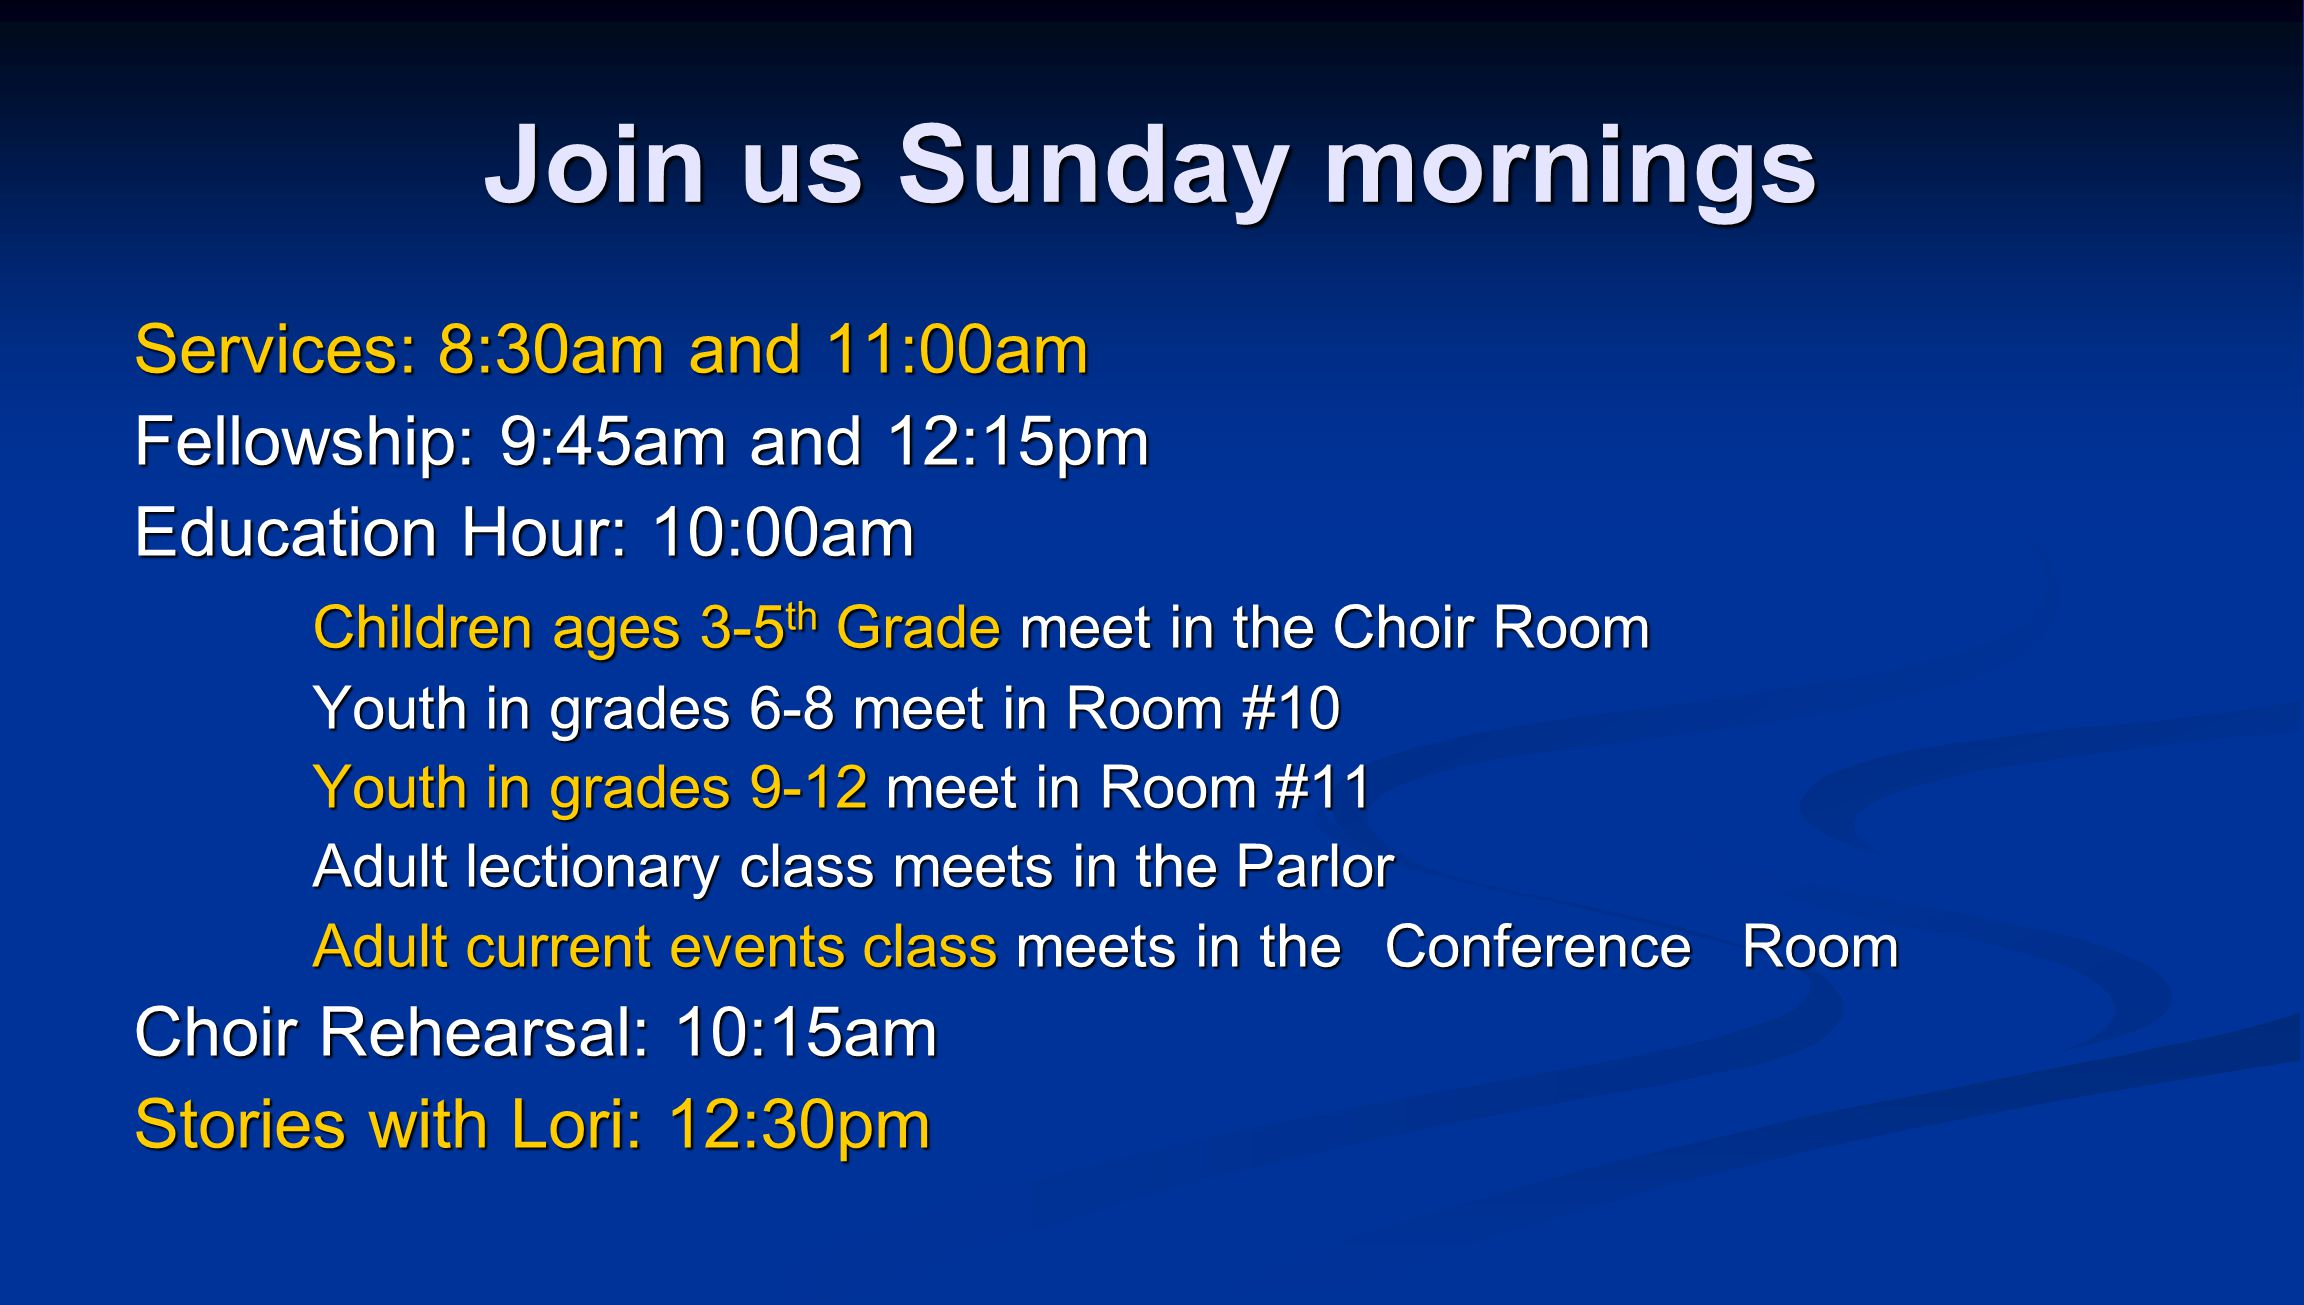 Join us Sunday mornings Services: 8:30am and 11:00am Fellowship: 9:45am and 12:15pm Education Hour: 10:00am Children ages 3-5 th Grade meet in the Choir Room Youth in grades 6-8 meet in Room #10 Youth in grades 9-12 meet in Room #11 Adult lectionary class meets in the Parlor Adult current events class meets in the Conference Room Choir Rehearsal: 10:15am Stories with Lori: 12:30pm